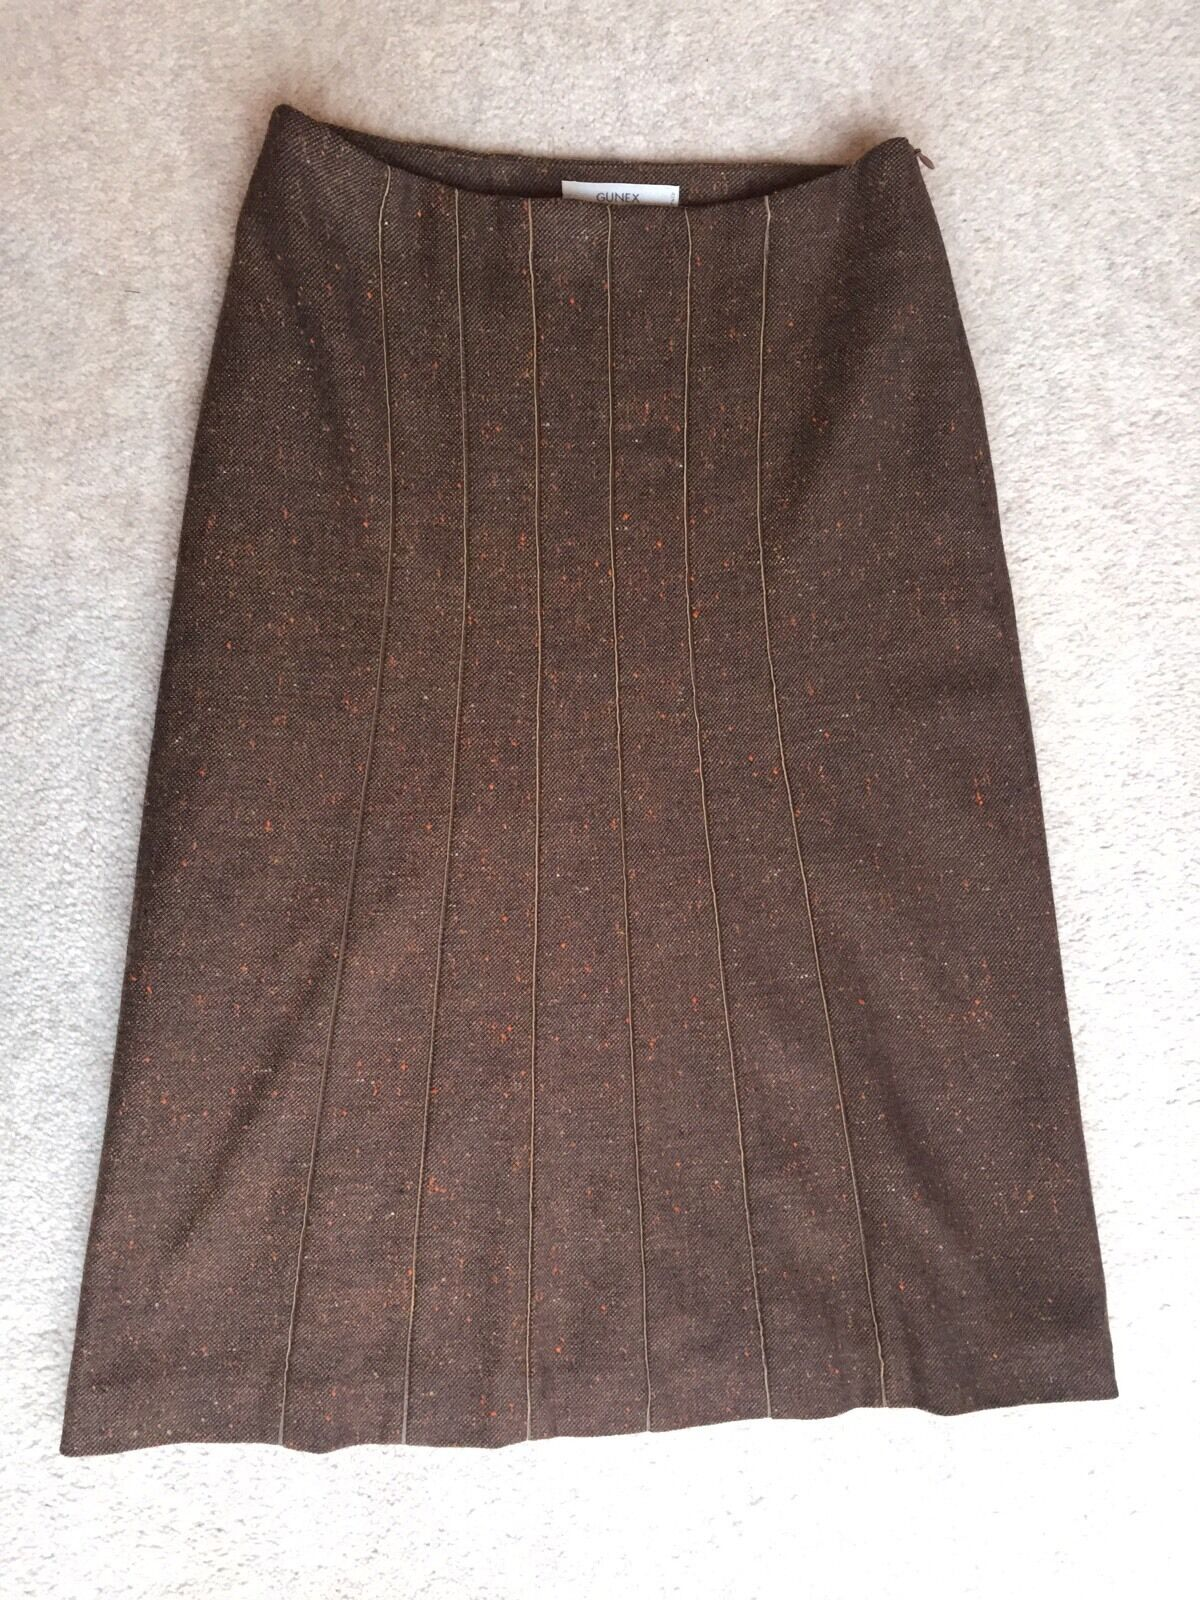 Gunex For Bergdorf Goodman Wool And Cashmere Pencil Skirt Size 6